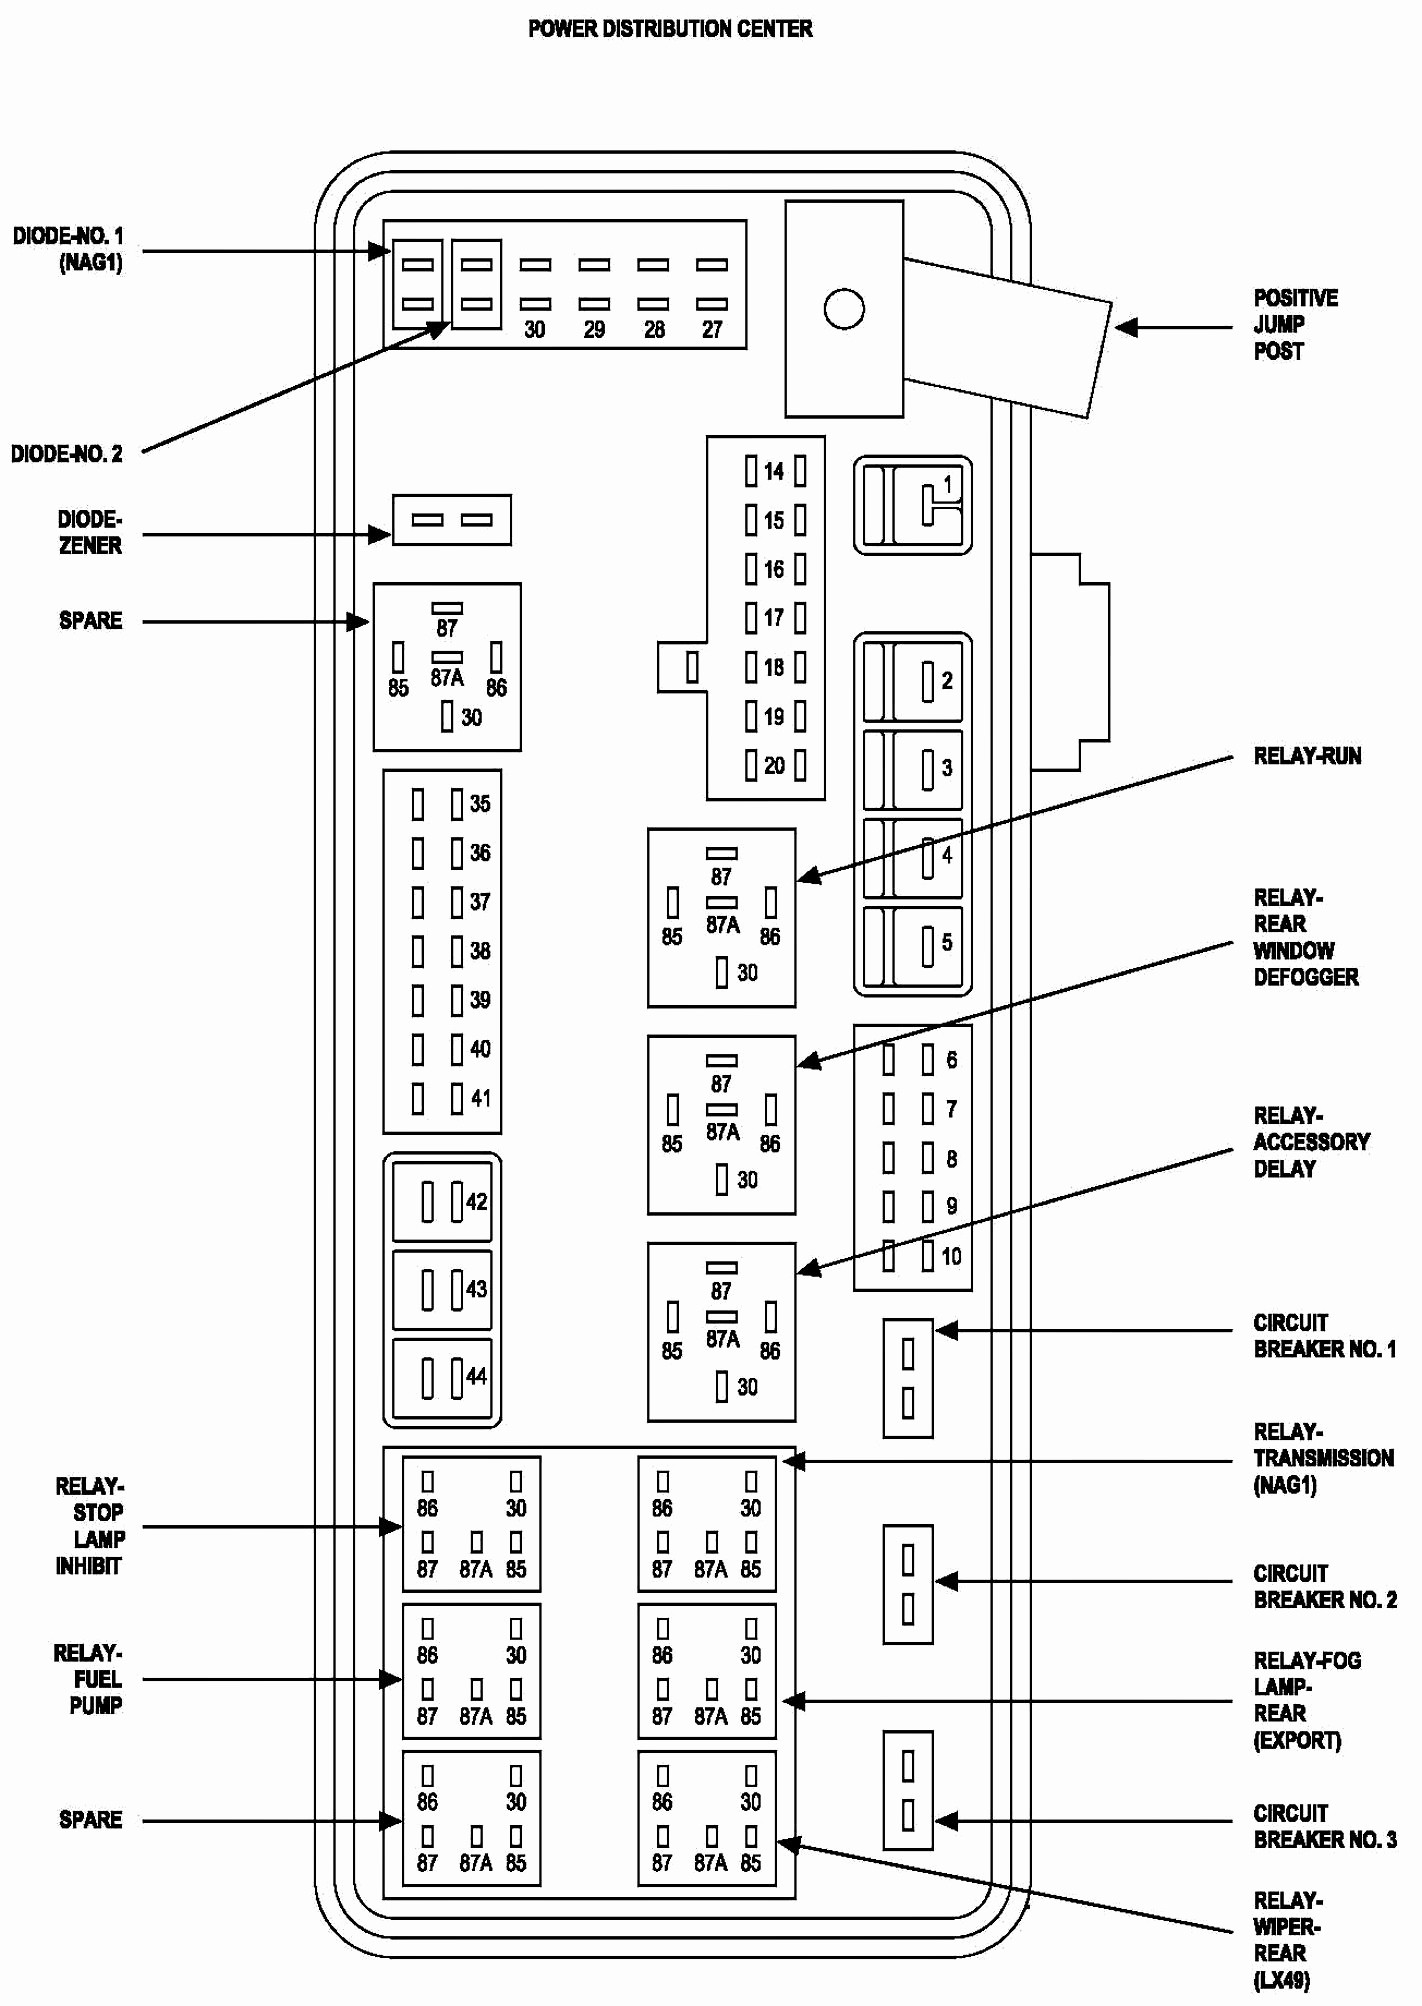 2012 Dodge Ram 3500 Fuse Box Diagram Electrical Schematics 2015 Ford Transit 2013 1500 Wiring For You All U2022 96